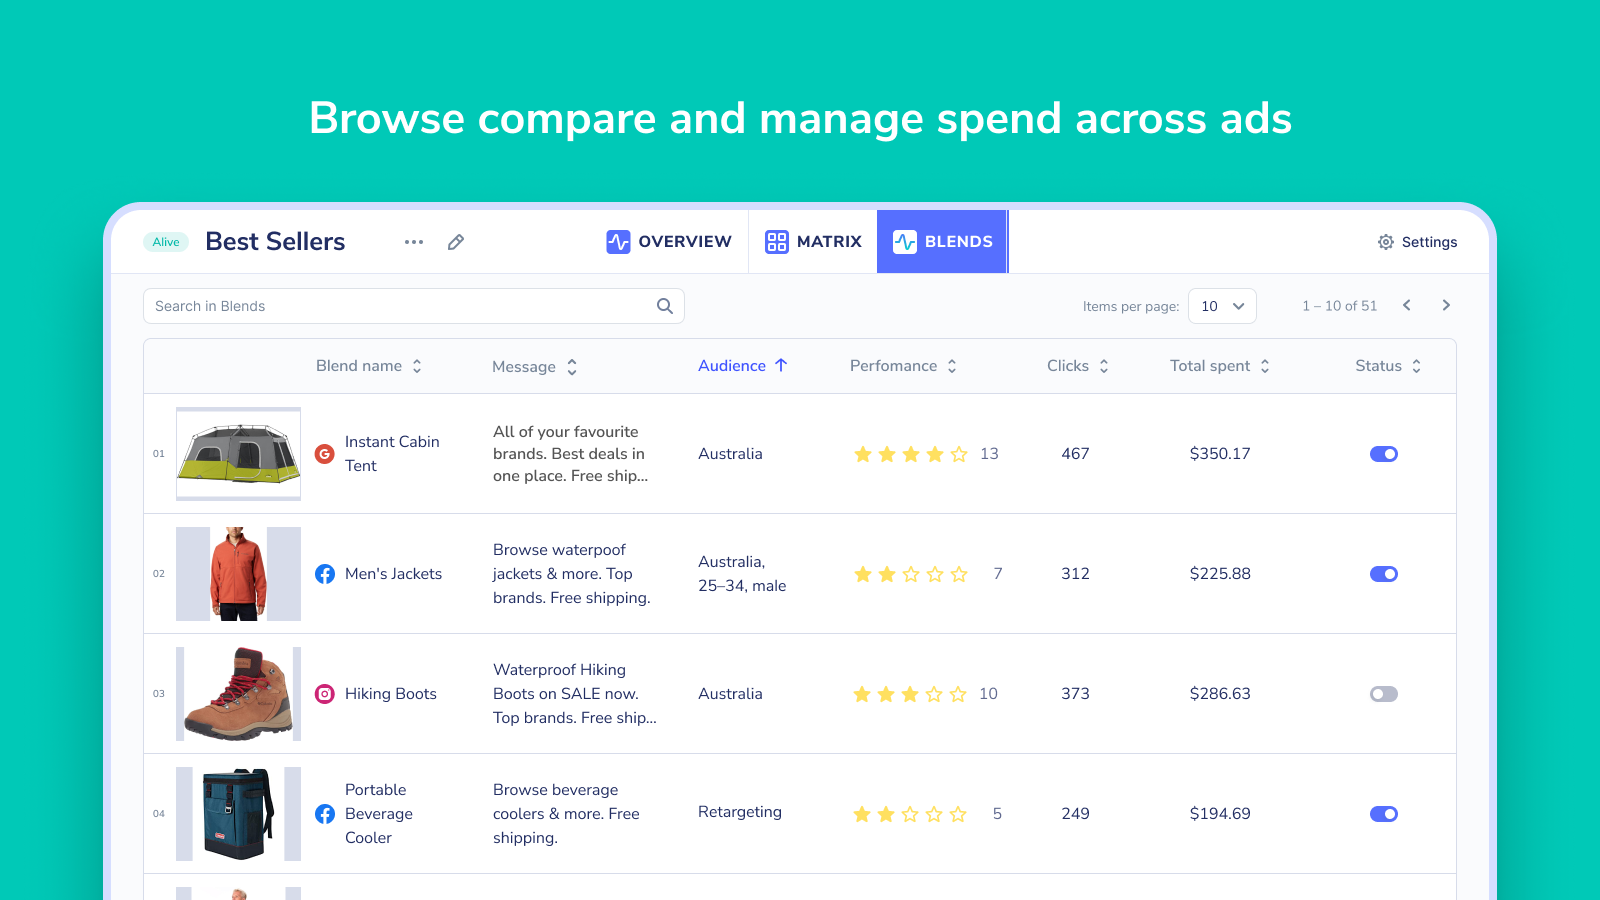 Browse, compare and manage the ads